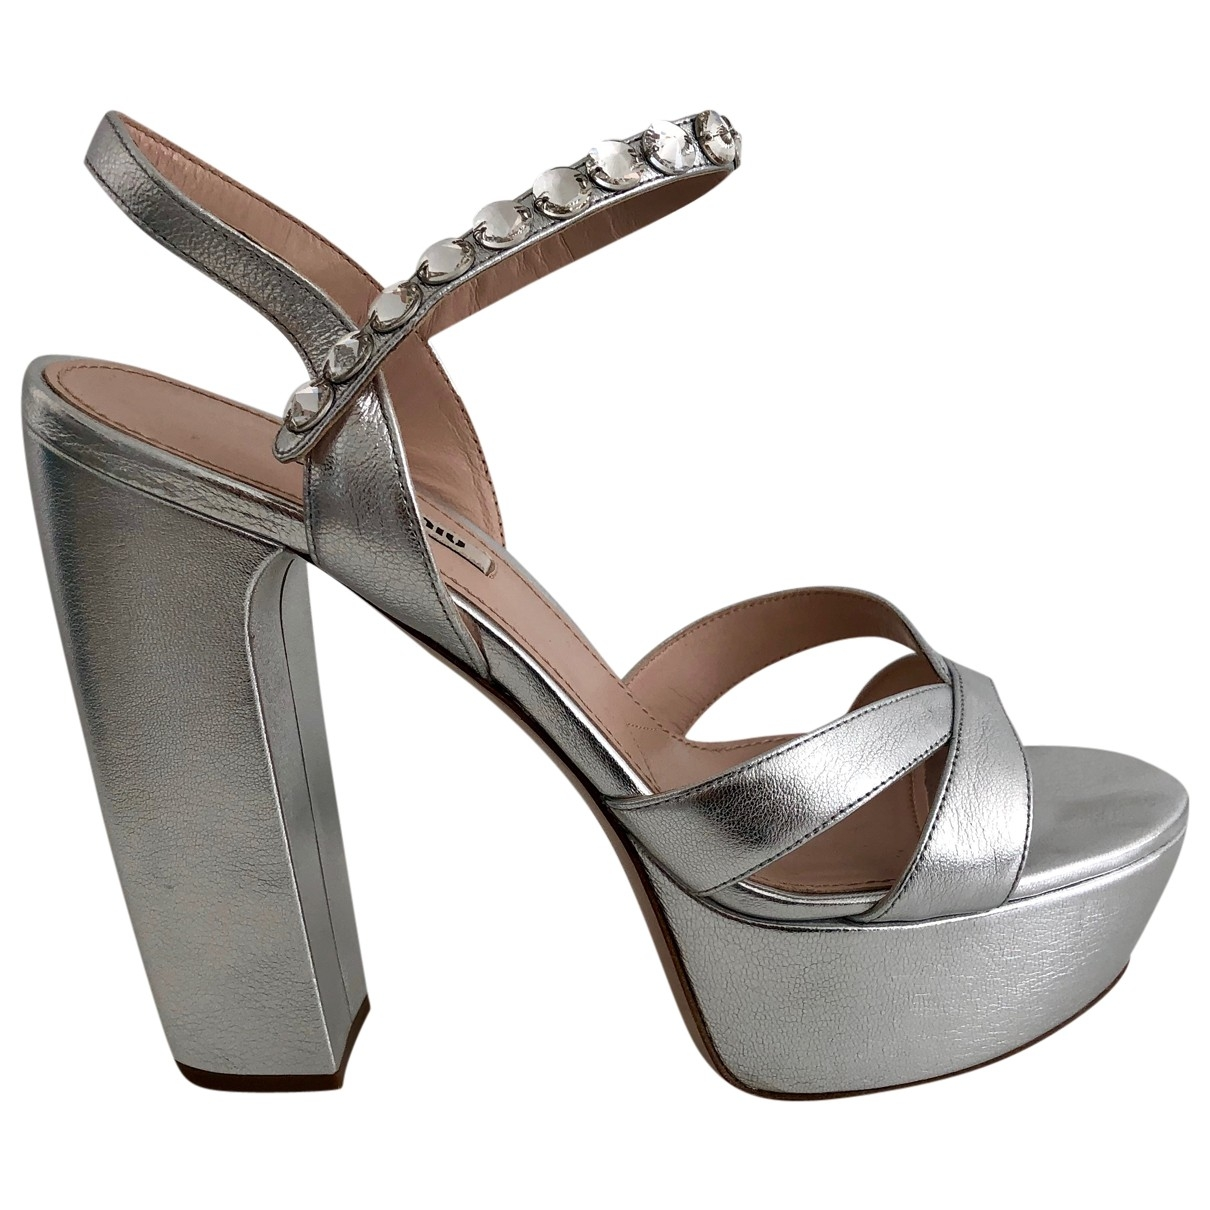 Miu Miu \N Silver Leather Sandals for Women 40 EU